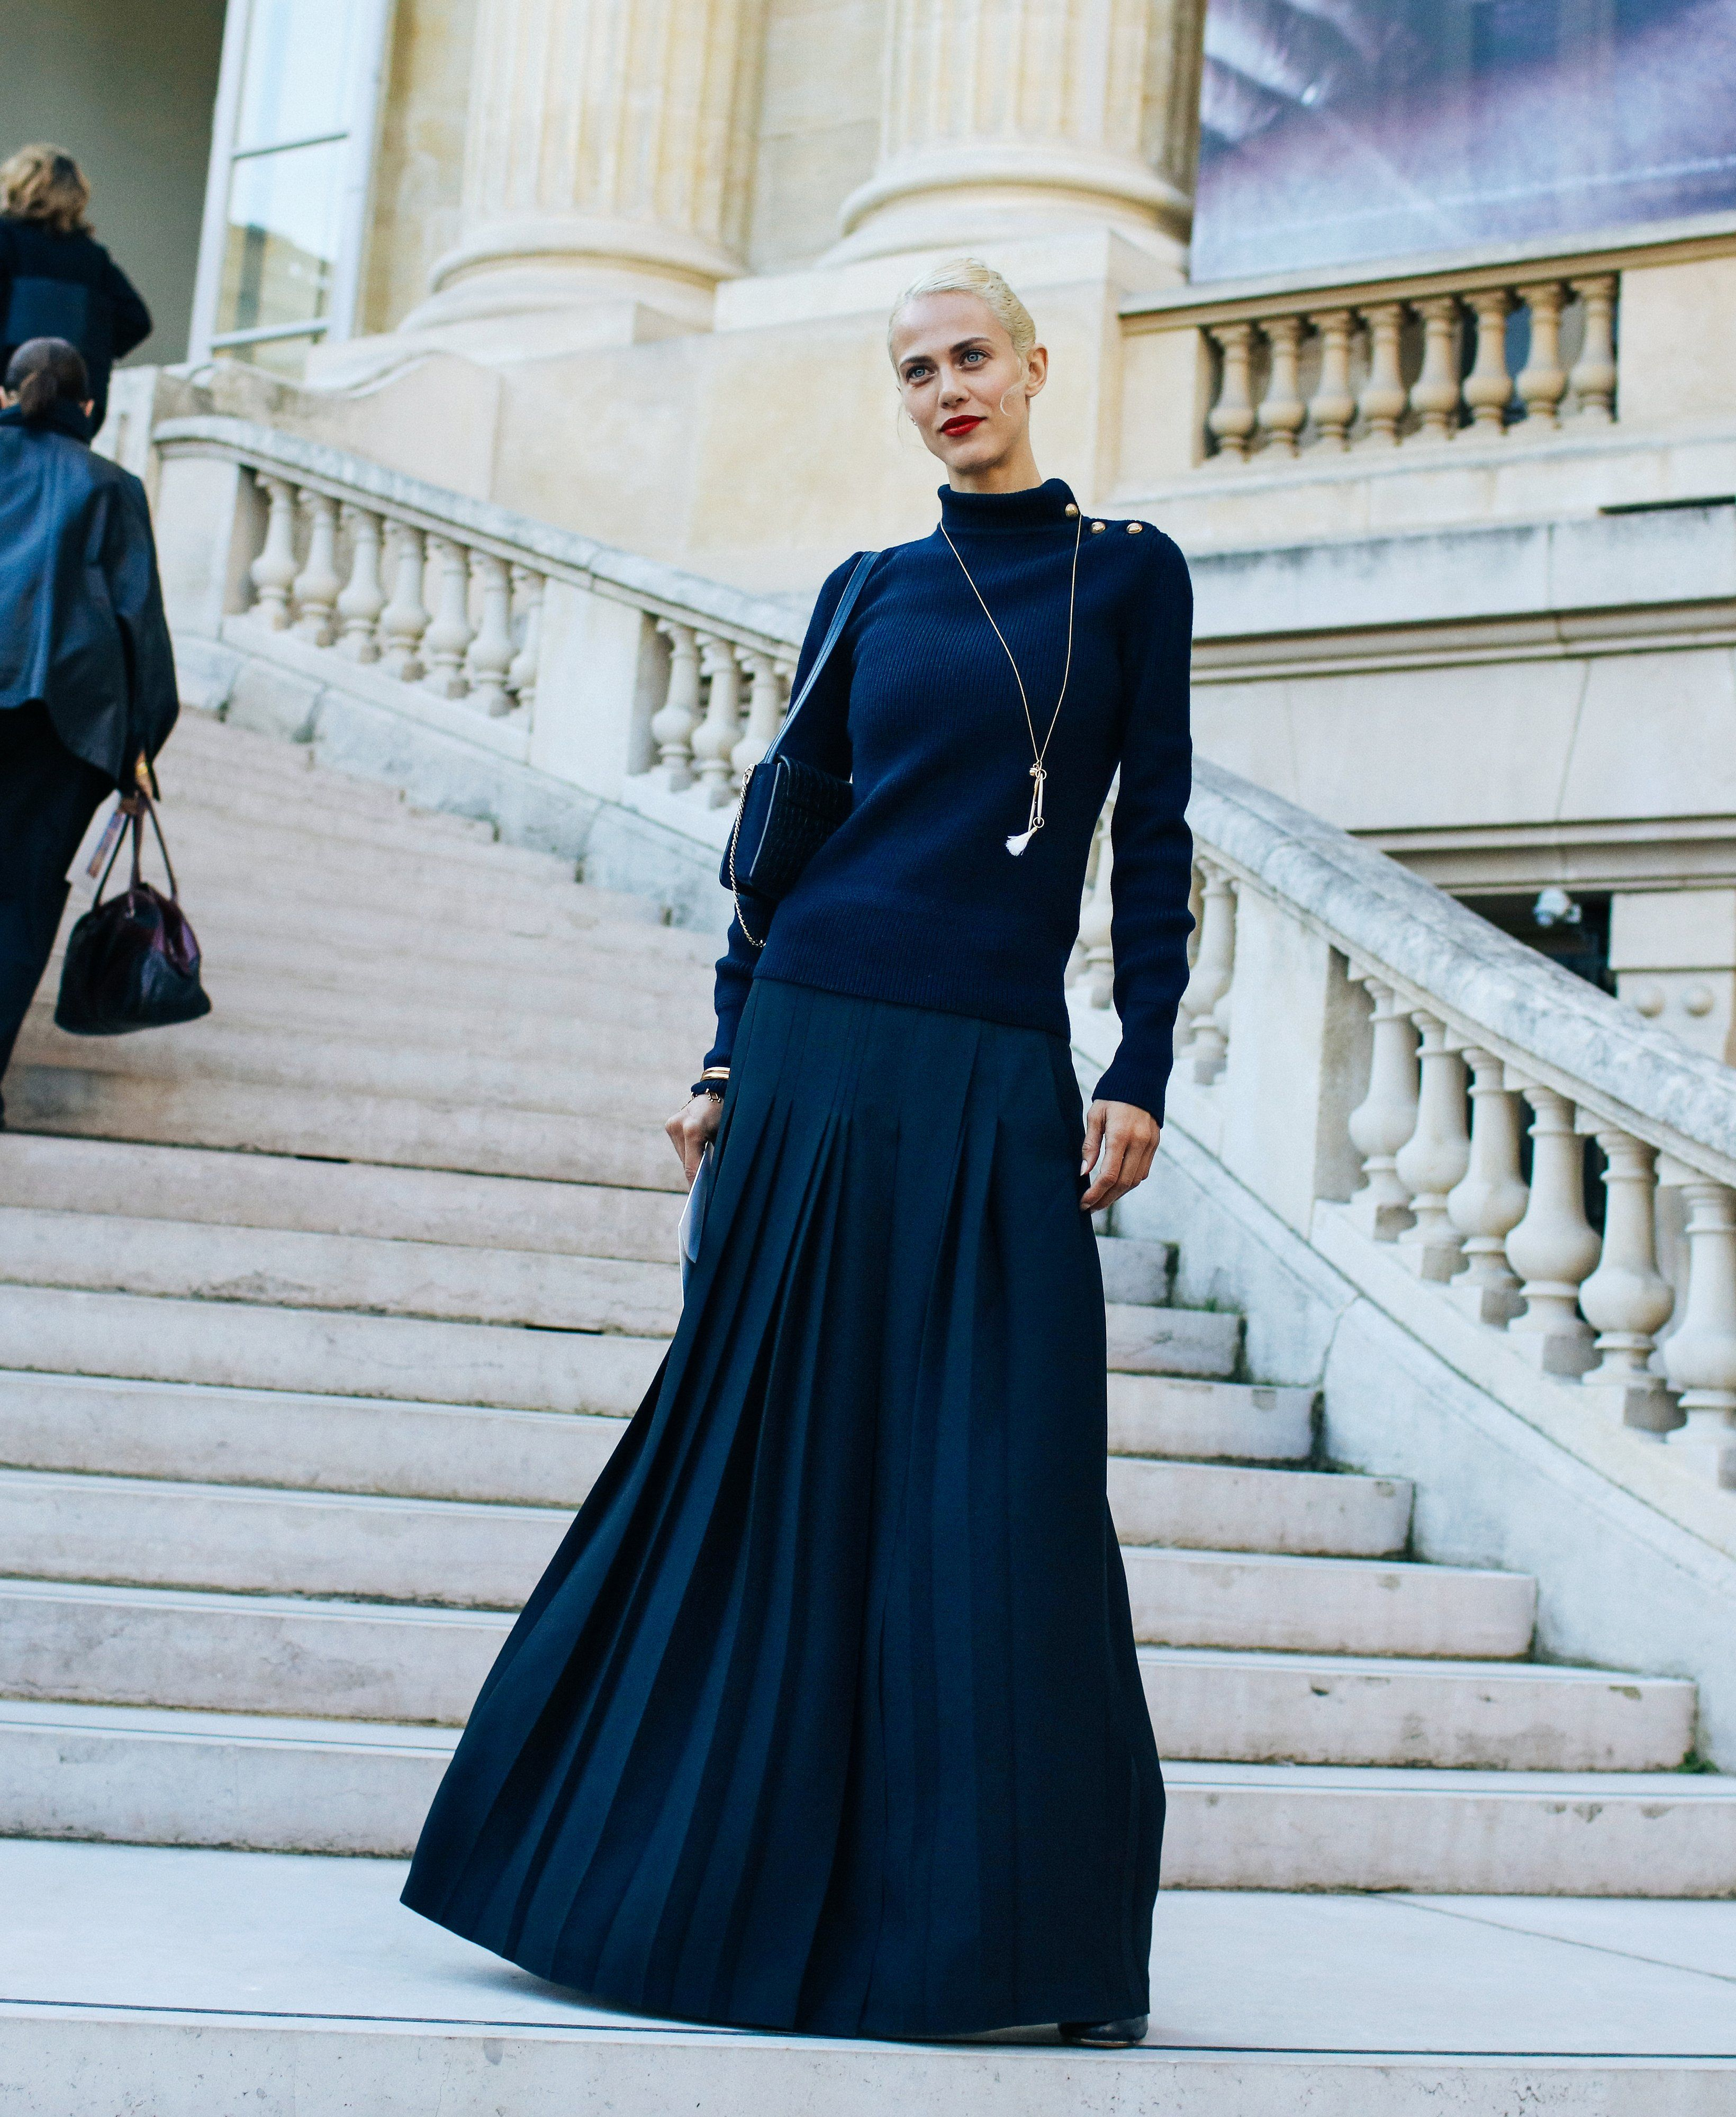 The Best Street Style Looks of Paris Fashion Week- this is my favorite one!